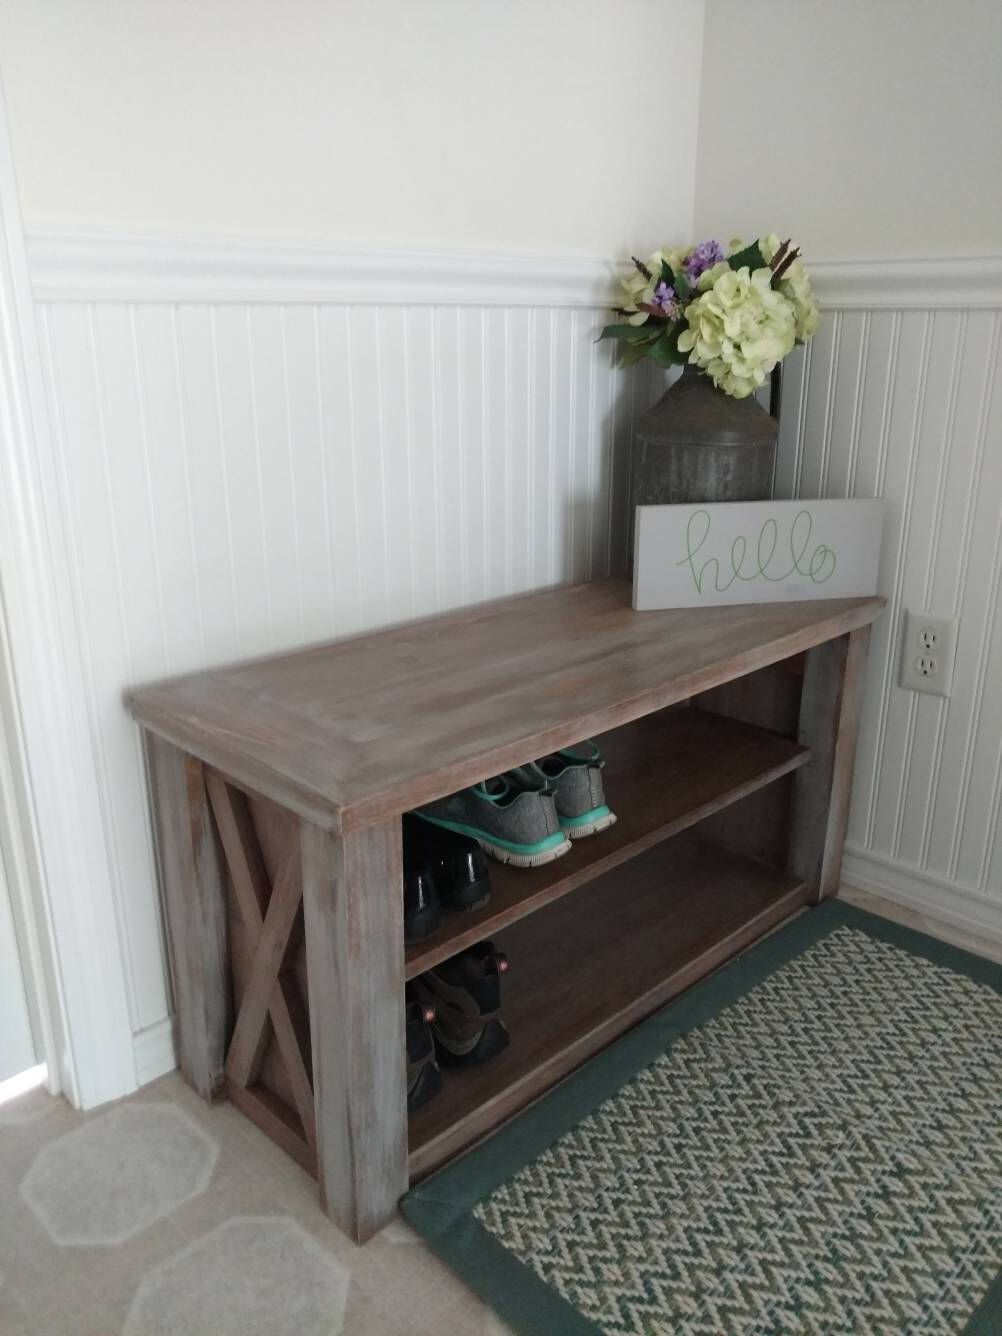 Rustic Entry Bench Shoe Storage Shelves Modern Farmhouse Entryway Furniture Distressed X Style F Rustic Entryway Rustic Entryway Bench Shoe Bench Entryway